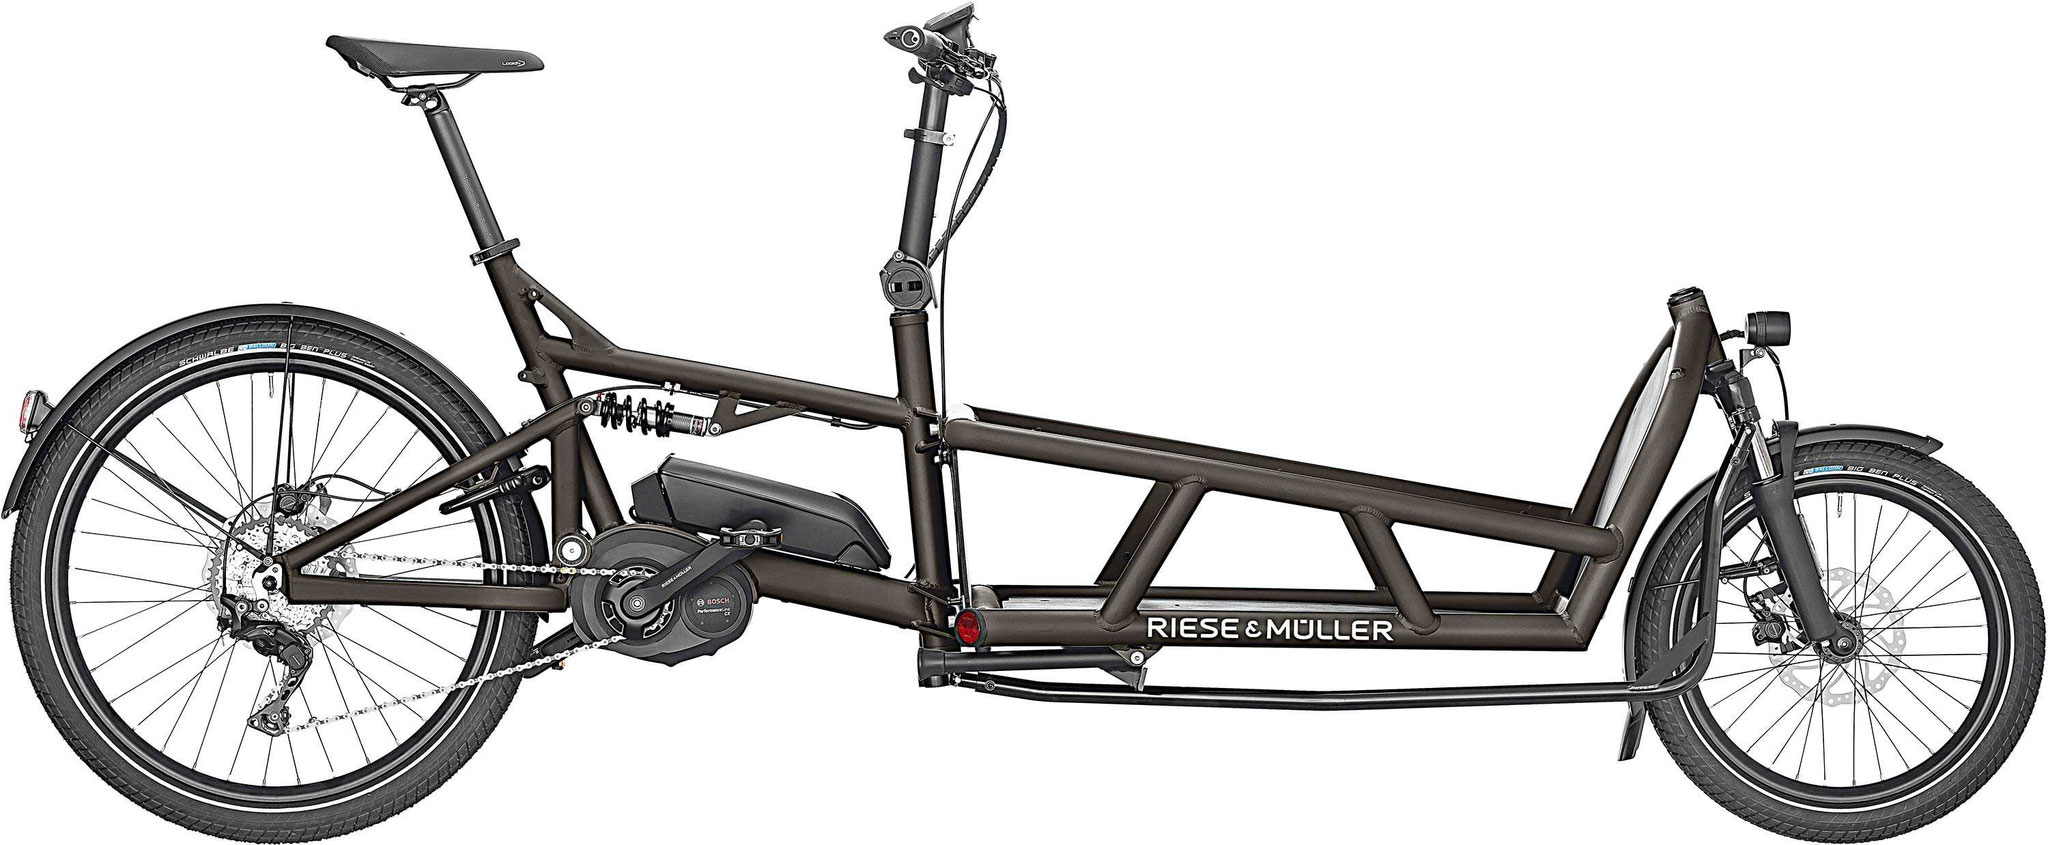 Riese & Müller Load 75 touring / Load 75 touring HS - graphite matt